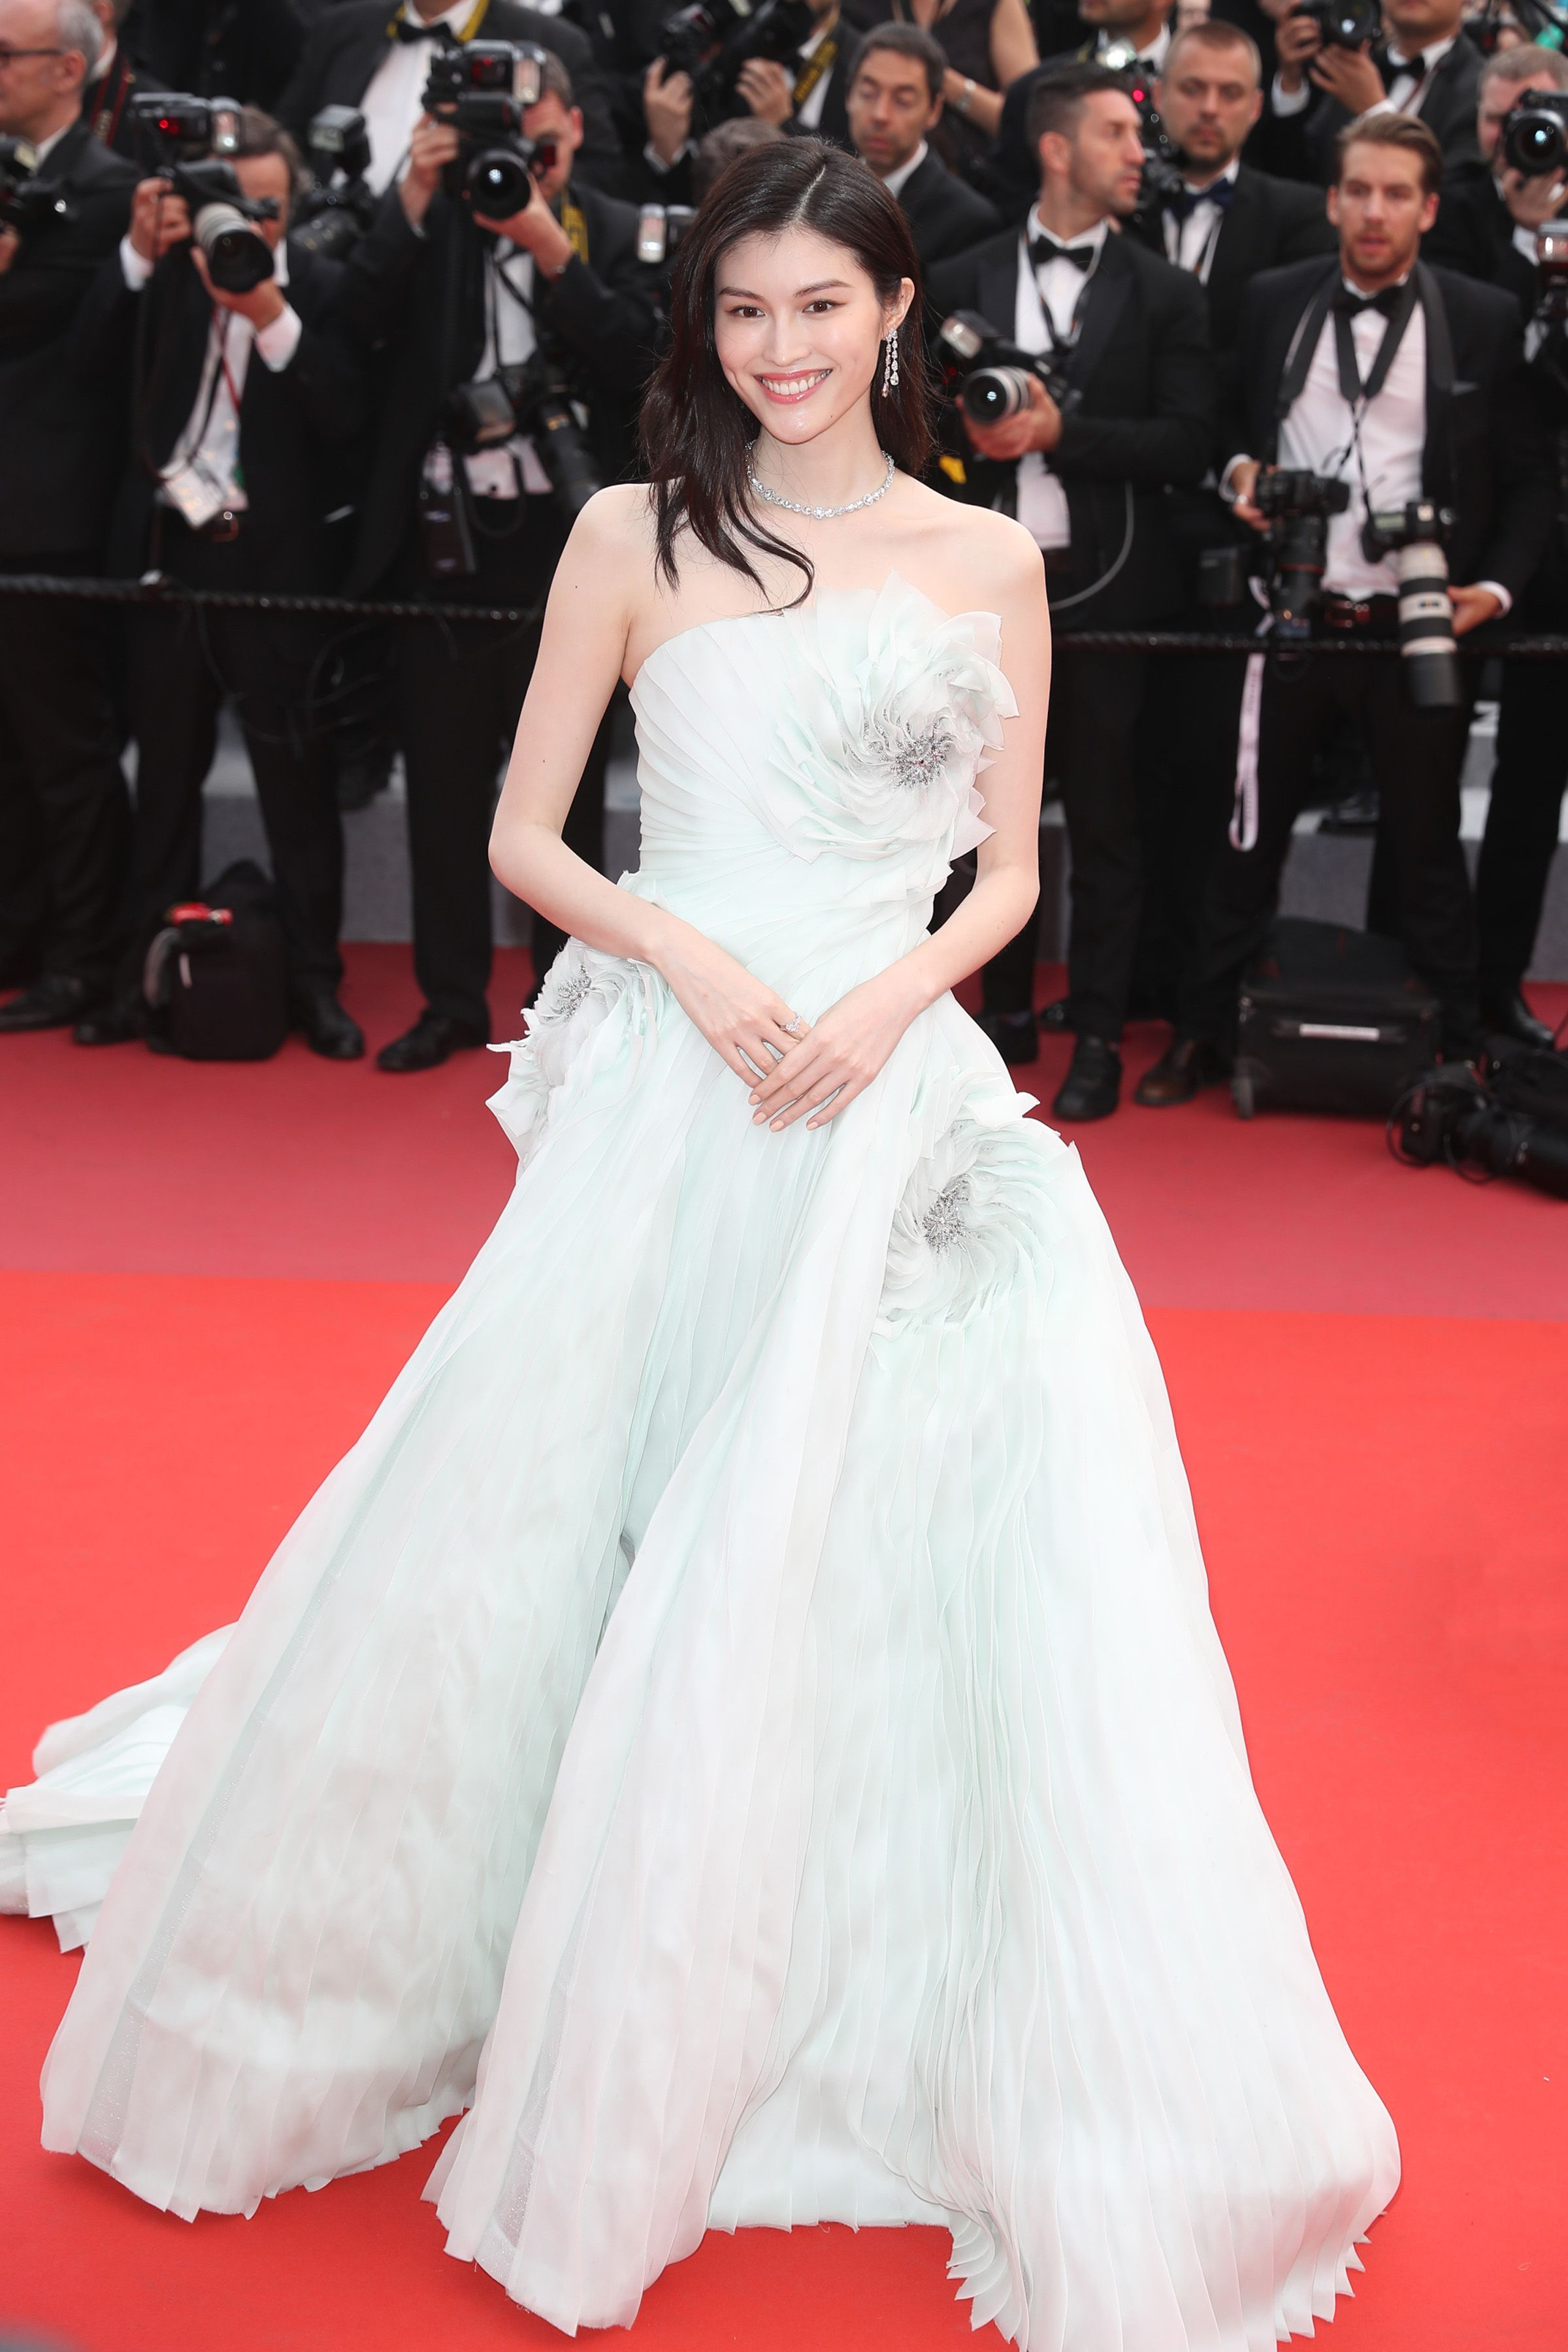 71st Cannes Film Festival Red Carpet - Sui He in Ralph   Russo  cannes   suihe d2244800e31